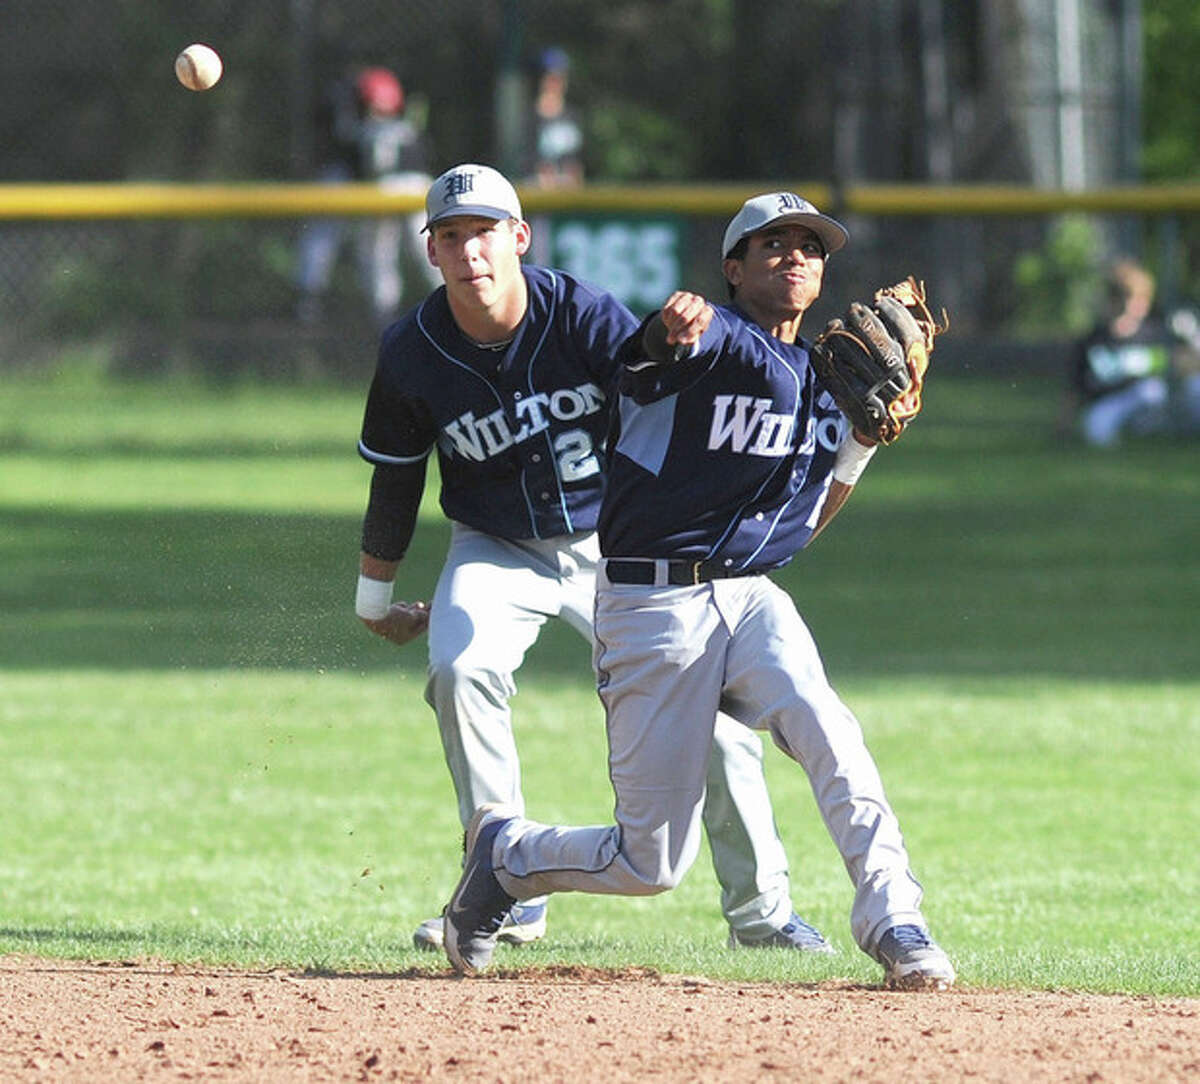 Hour photo/John Nash Wilton second baseman Jordan Prince, right, comes up firing to first on a ground ball hit up the middle as shortstop Brett Phillips looks on. Prince made the play for an out.